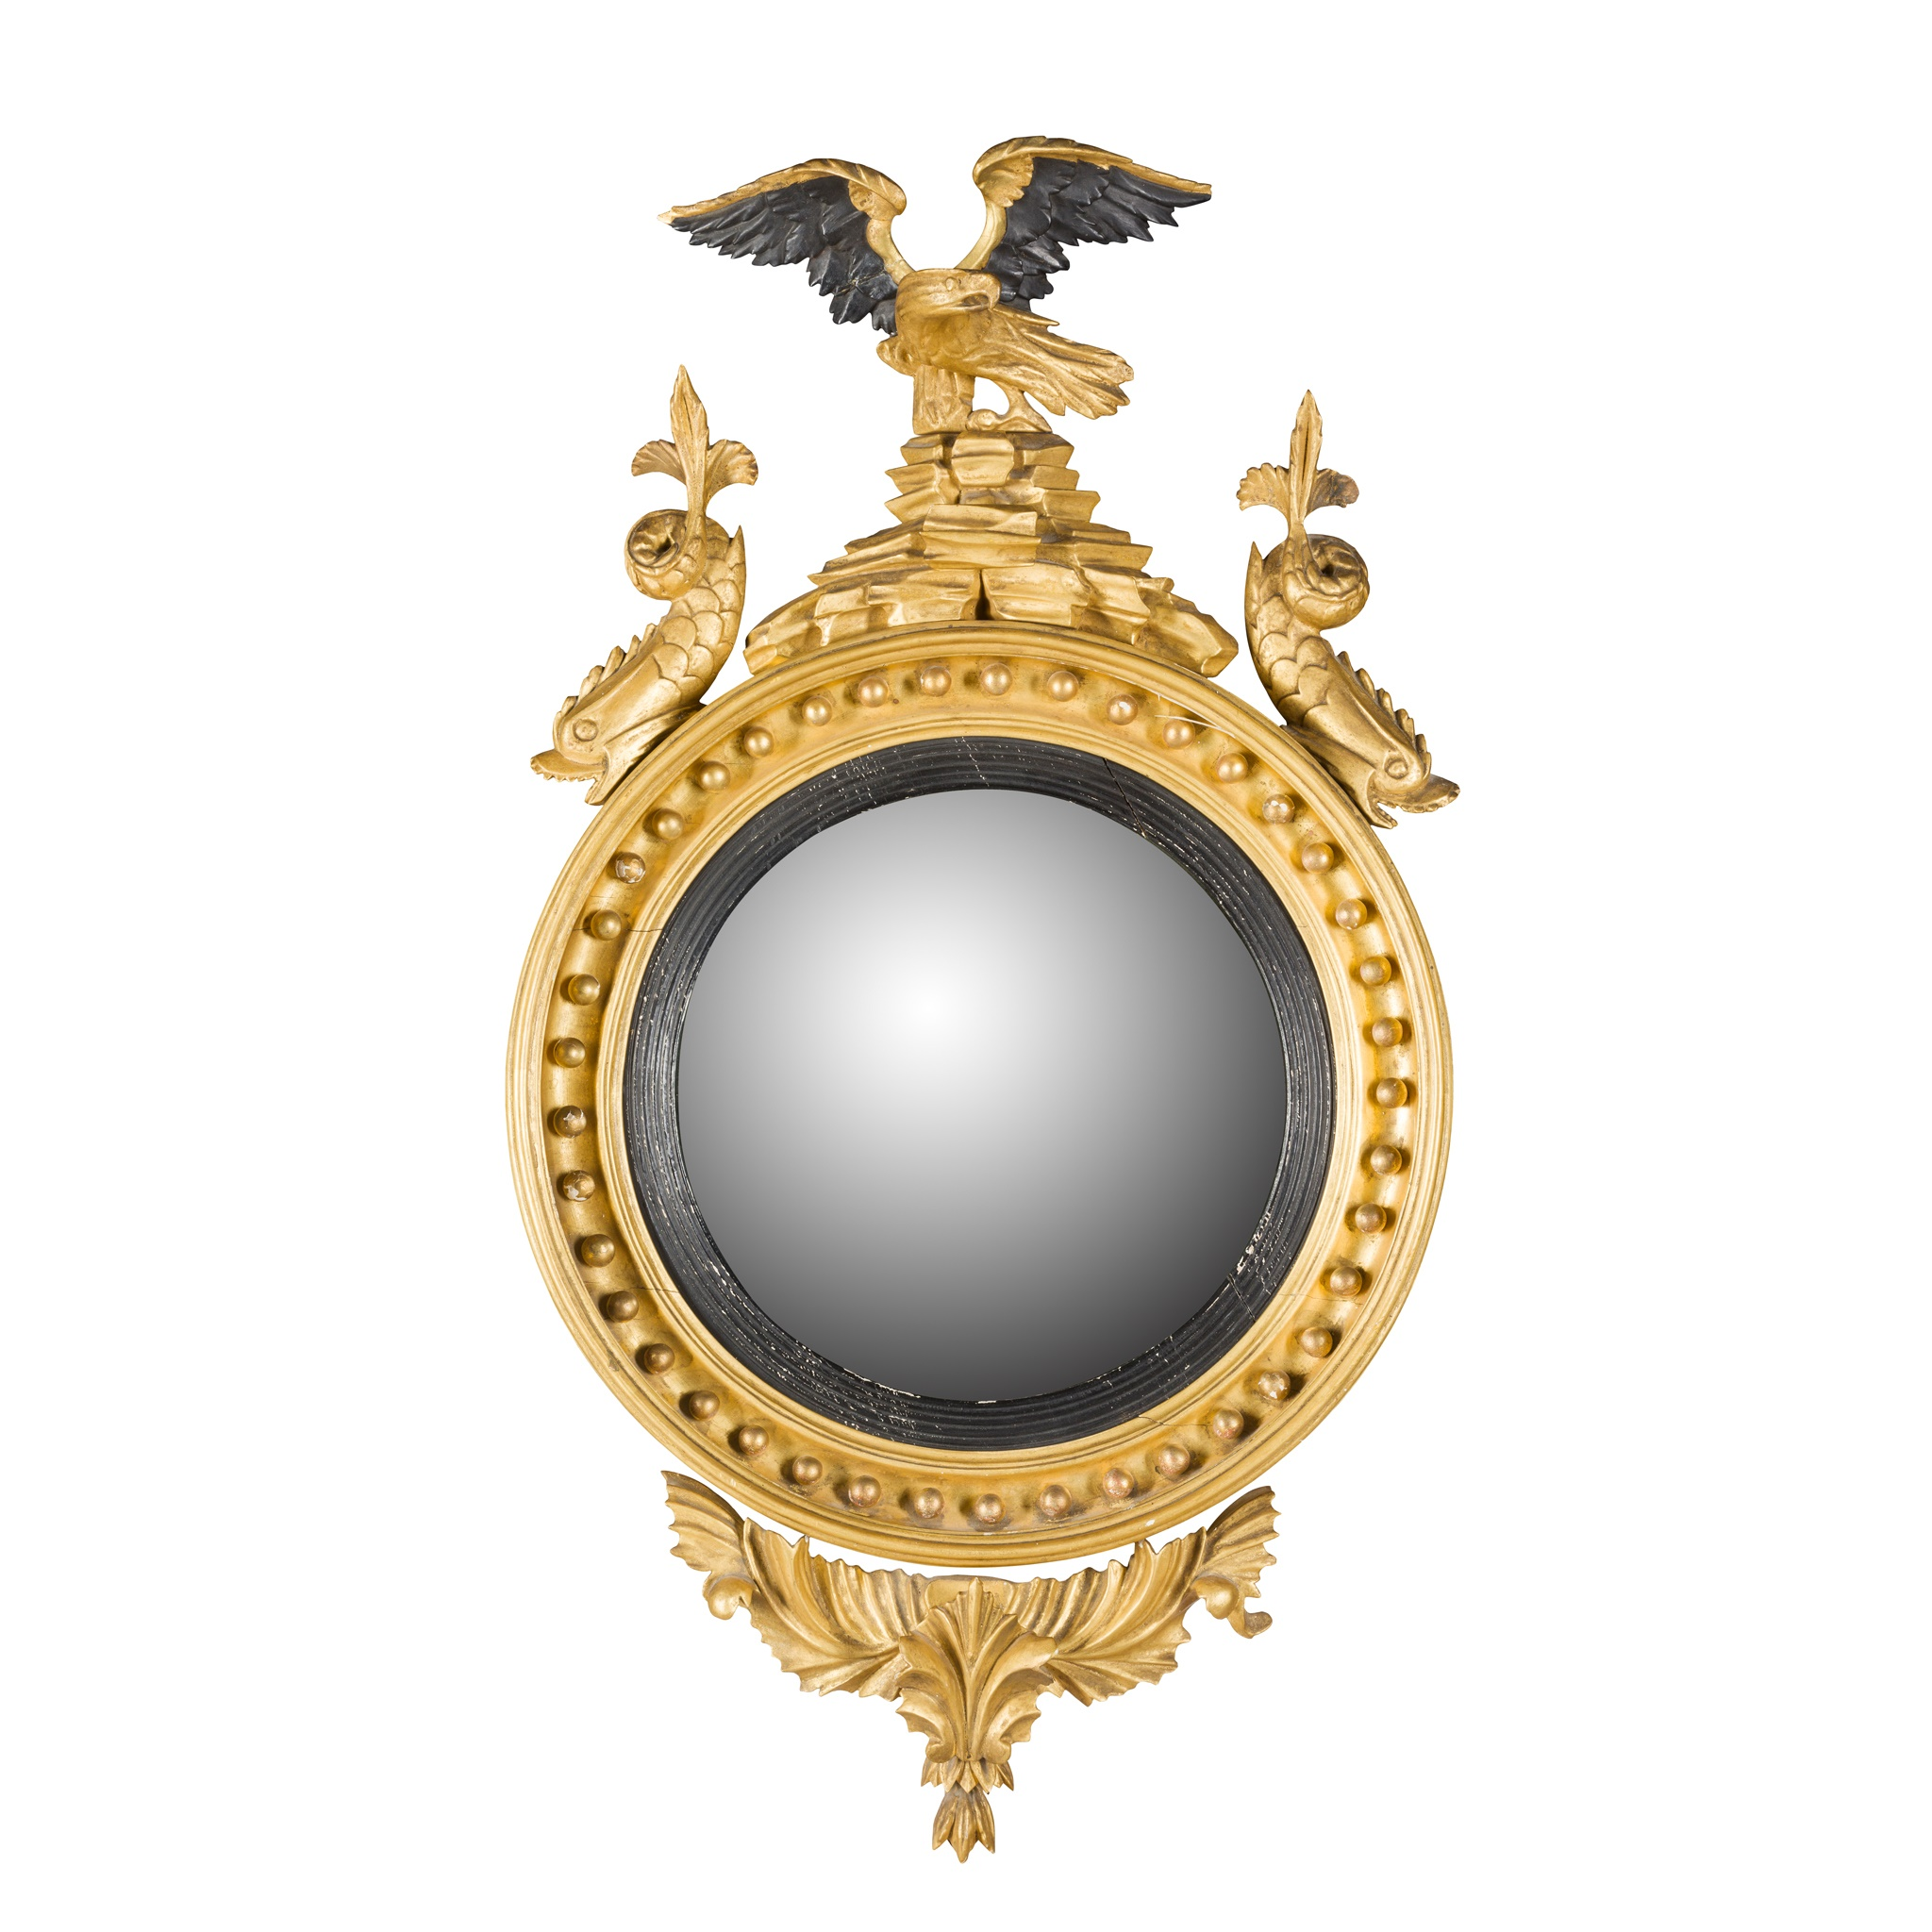 REGENCY GILTWOOD AND EBONISED CONVEX MIRROR EARLY 19TH CENTURY